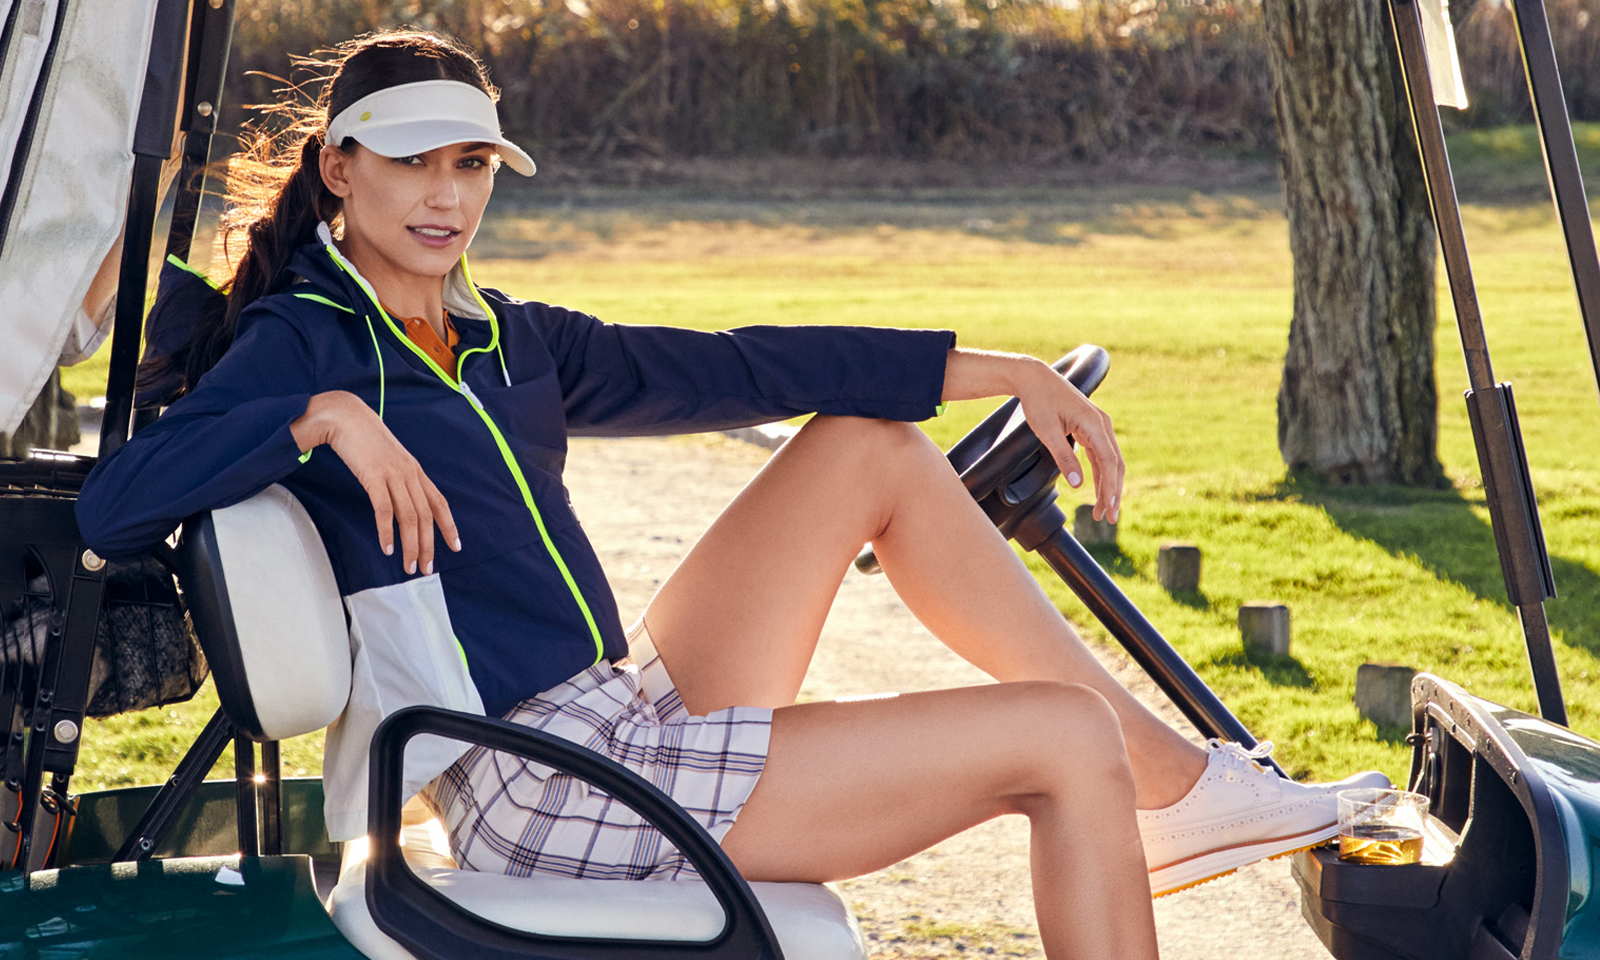 Cole Haan Masters women's golf shoes